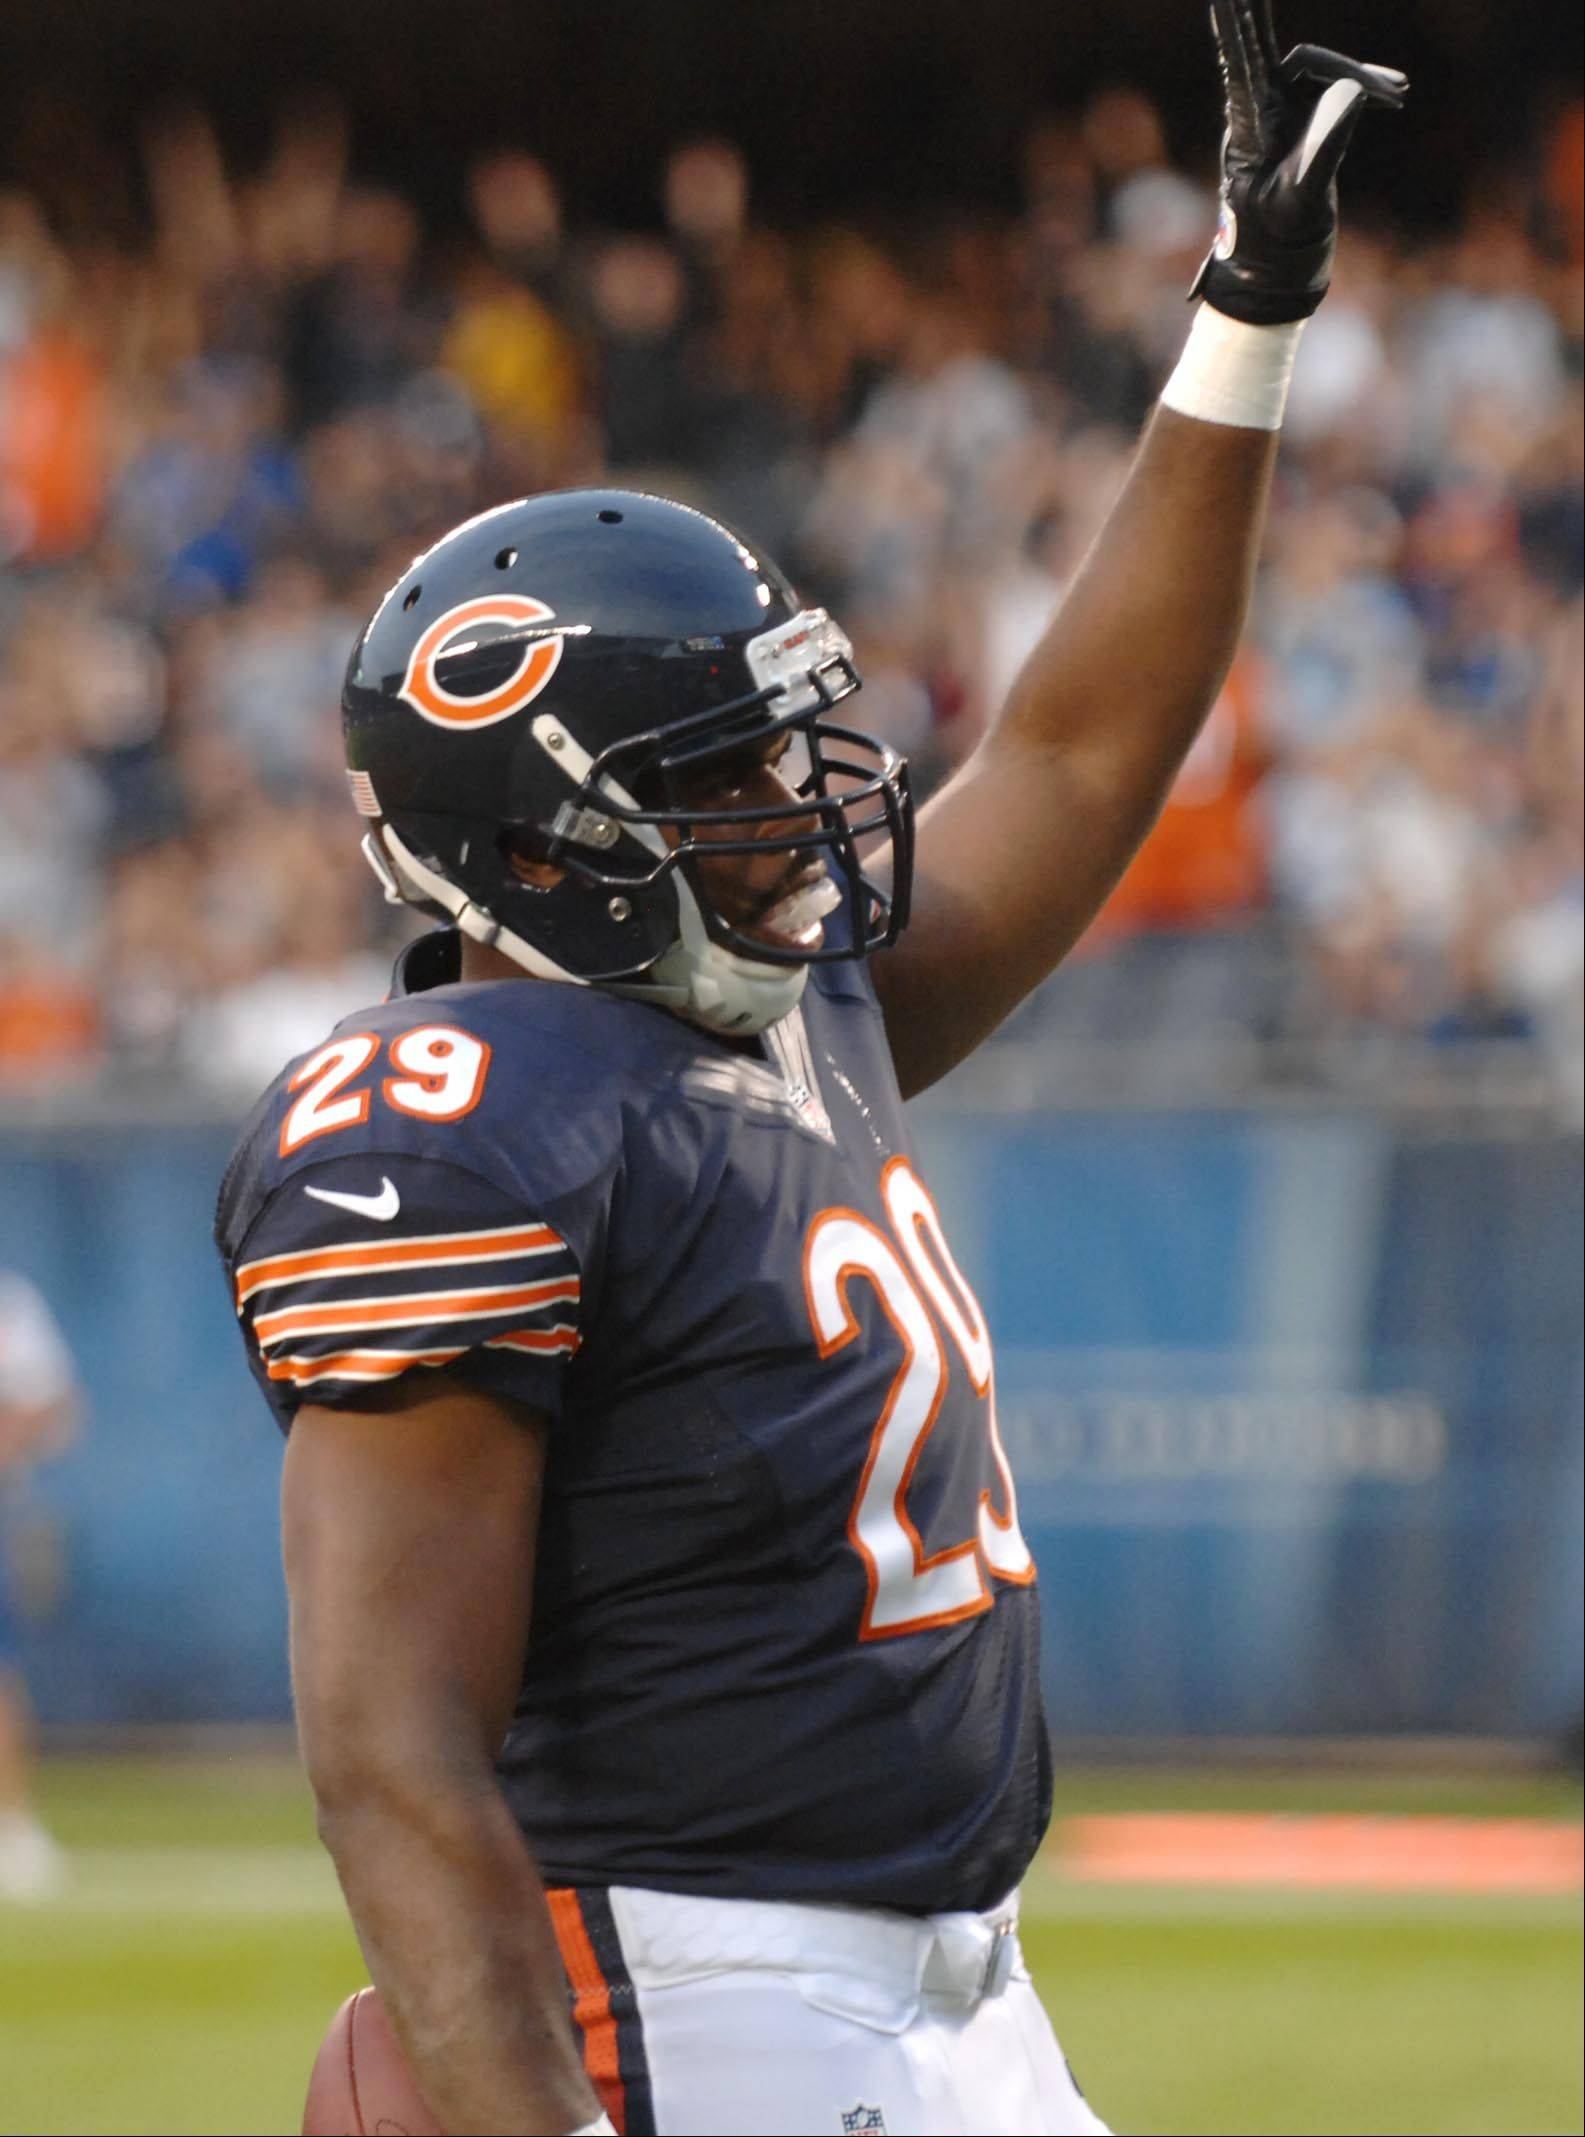 Bears running back Michael Bush signals to the crowd after his first touchdown Saturday against the Washington Redskins.